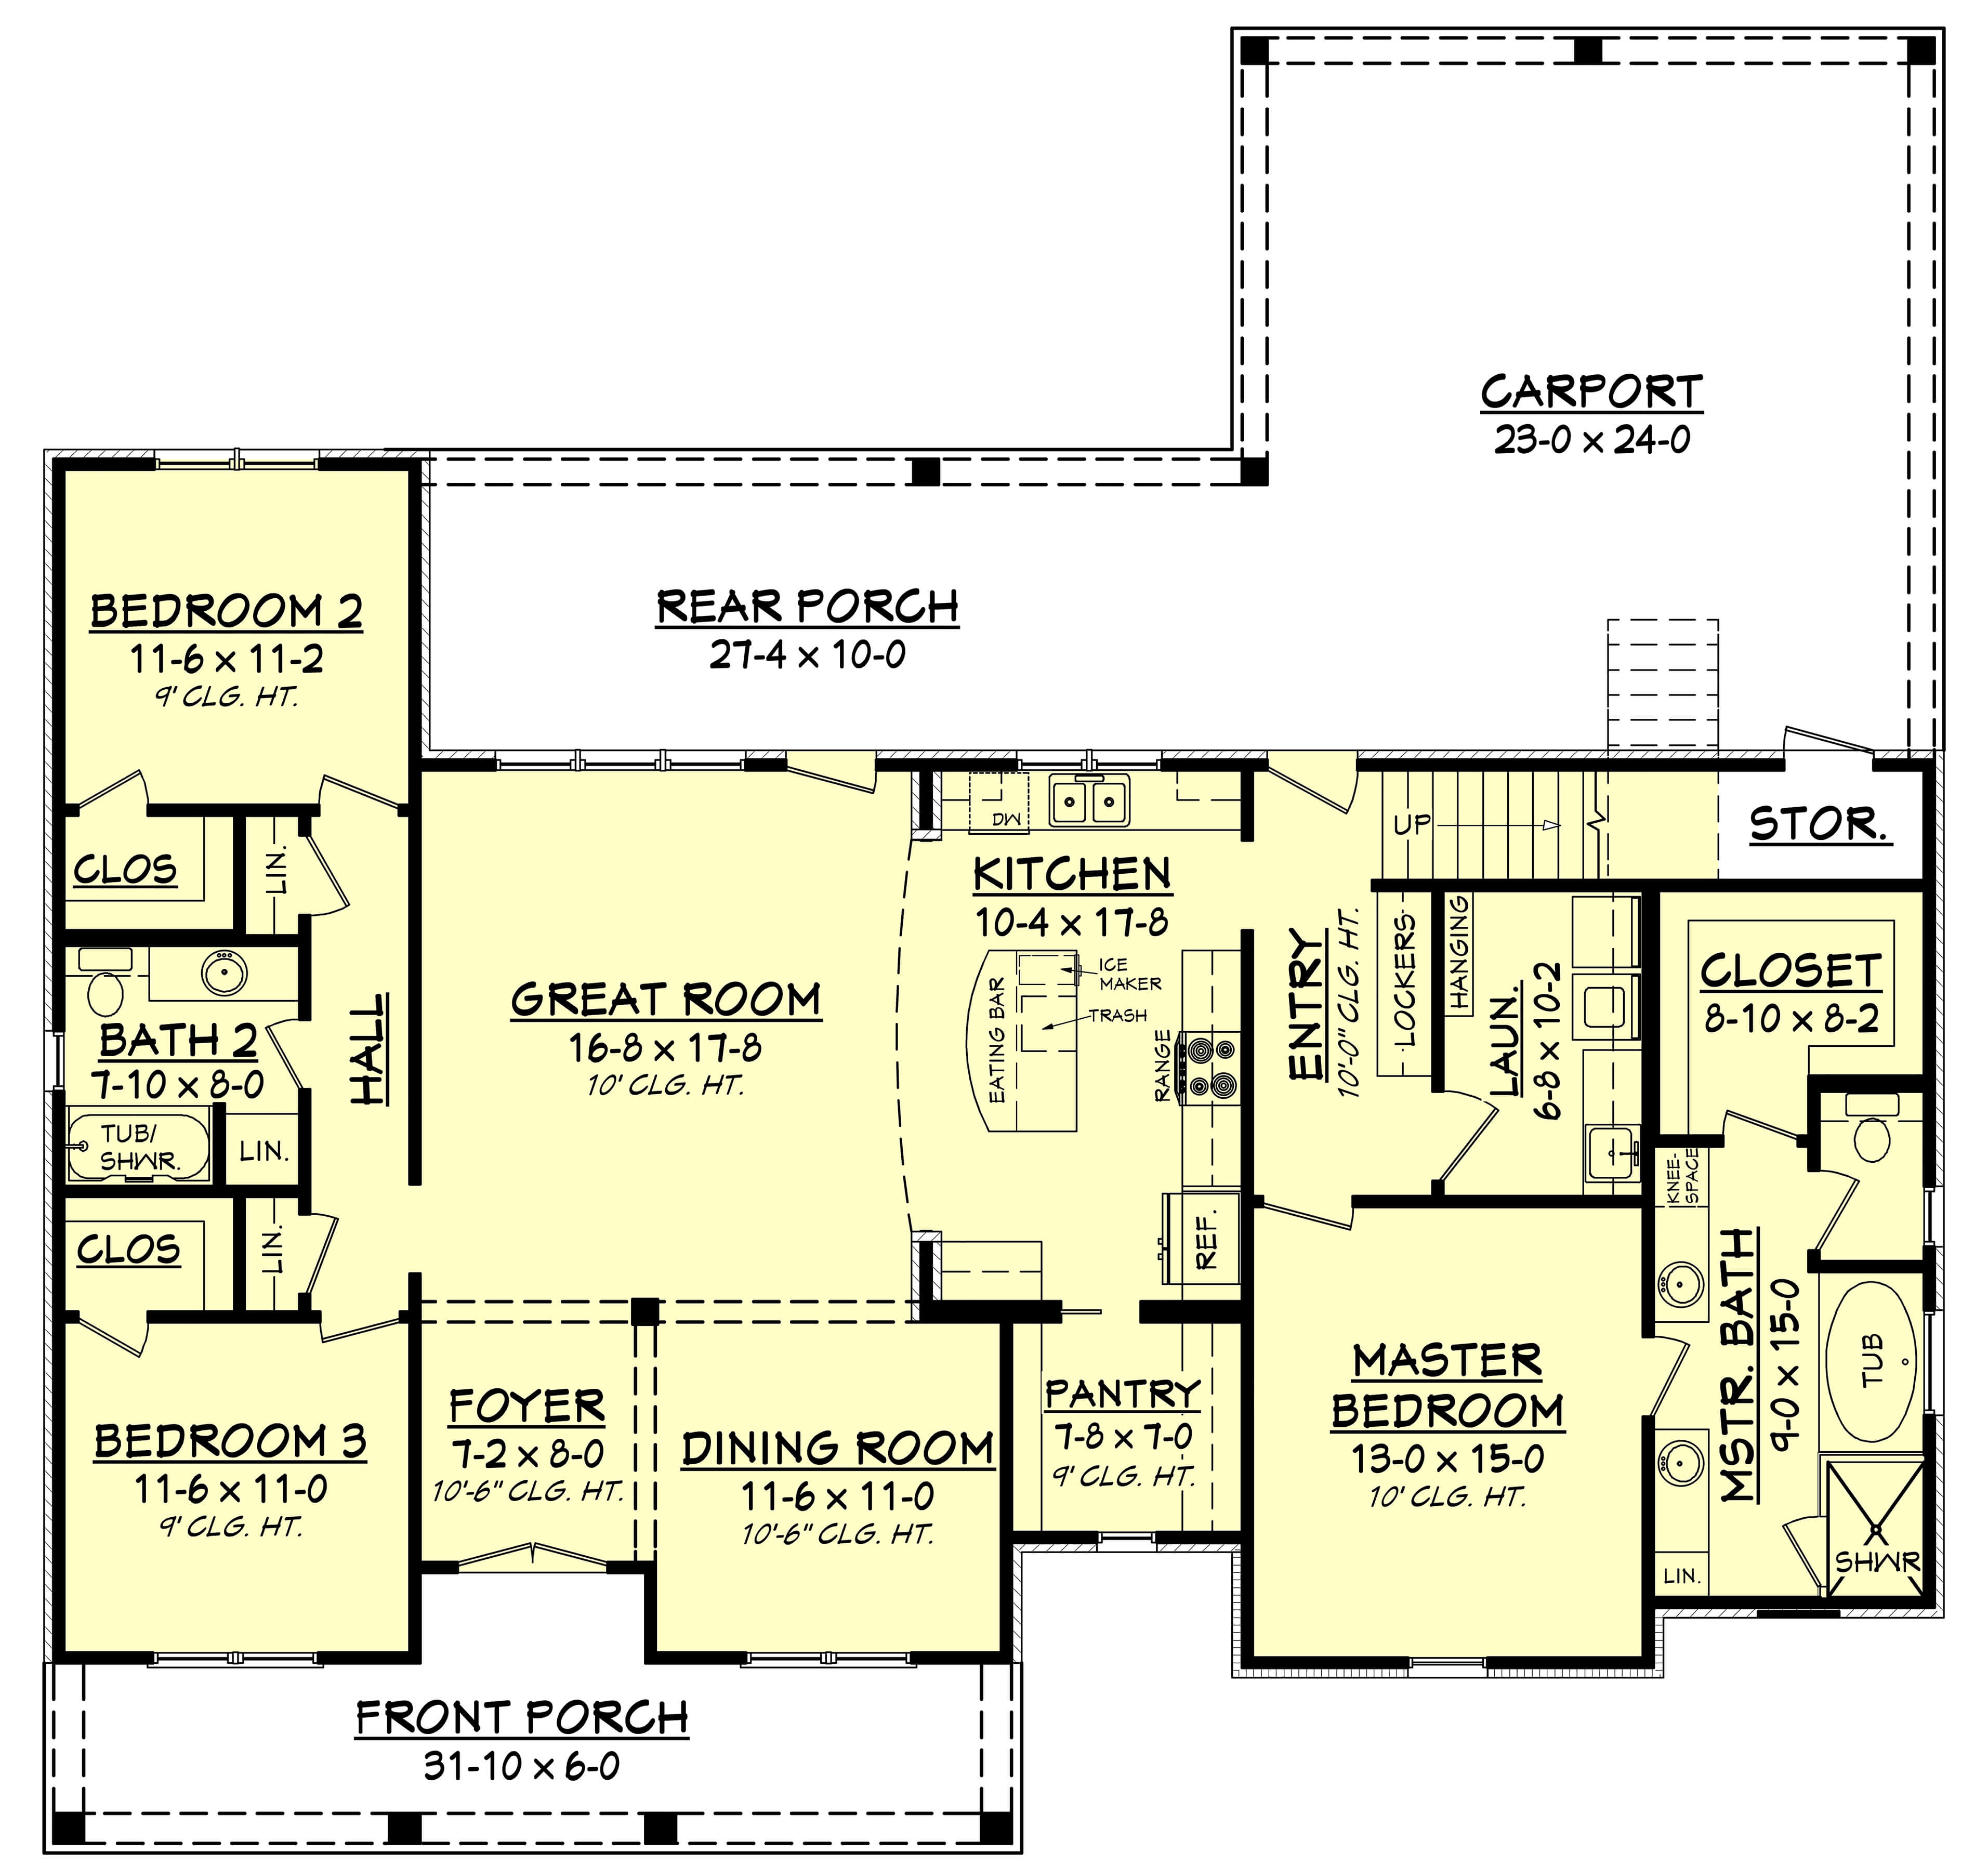 3 bedrm 1900 sq ft acadian house plan 142 1163 Plan my house